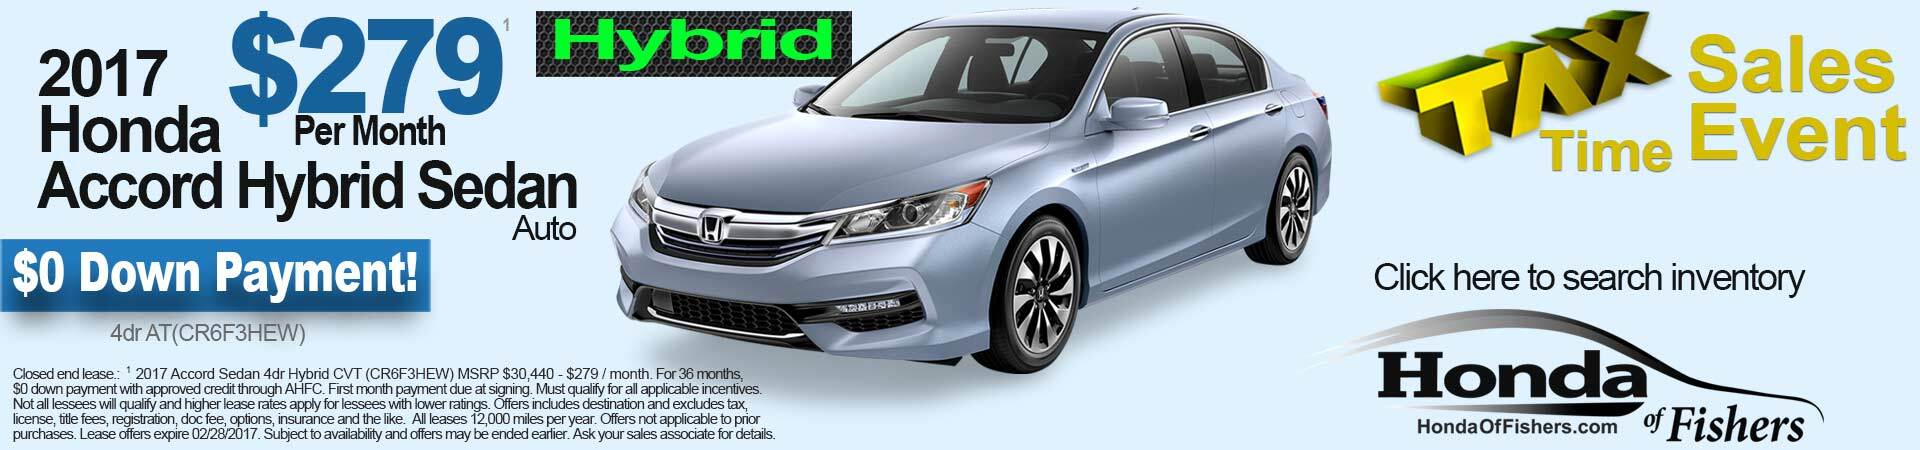 Honda Accord Hybrid in Indianapolis, IN